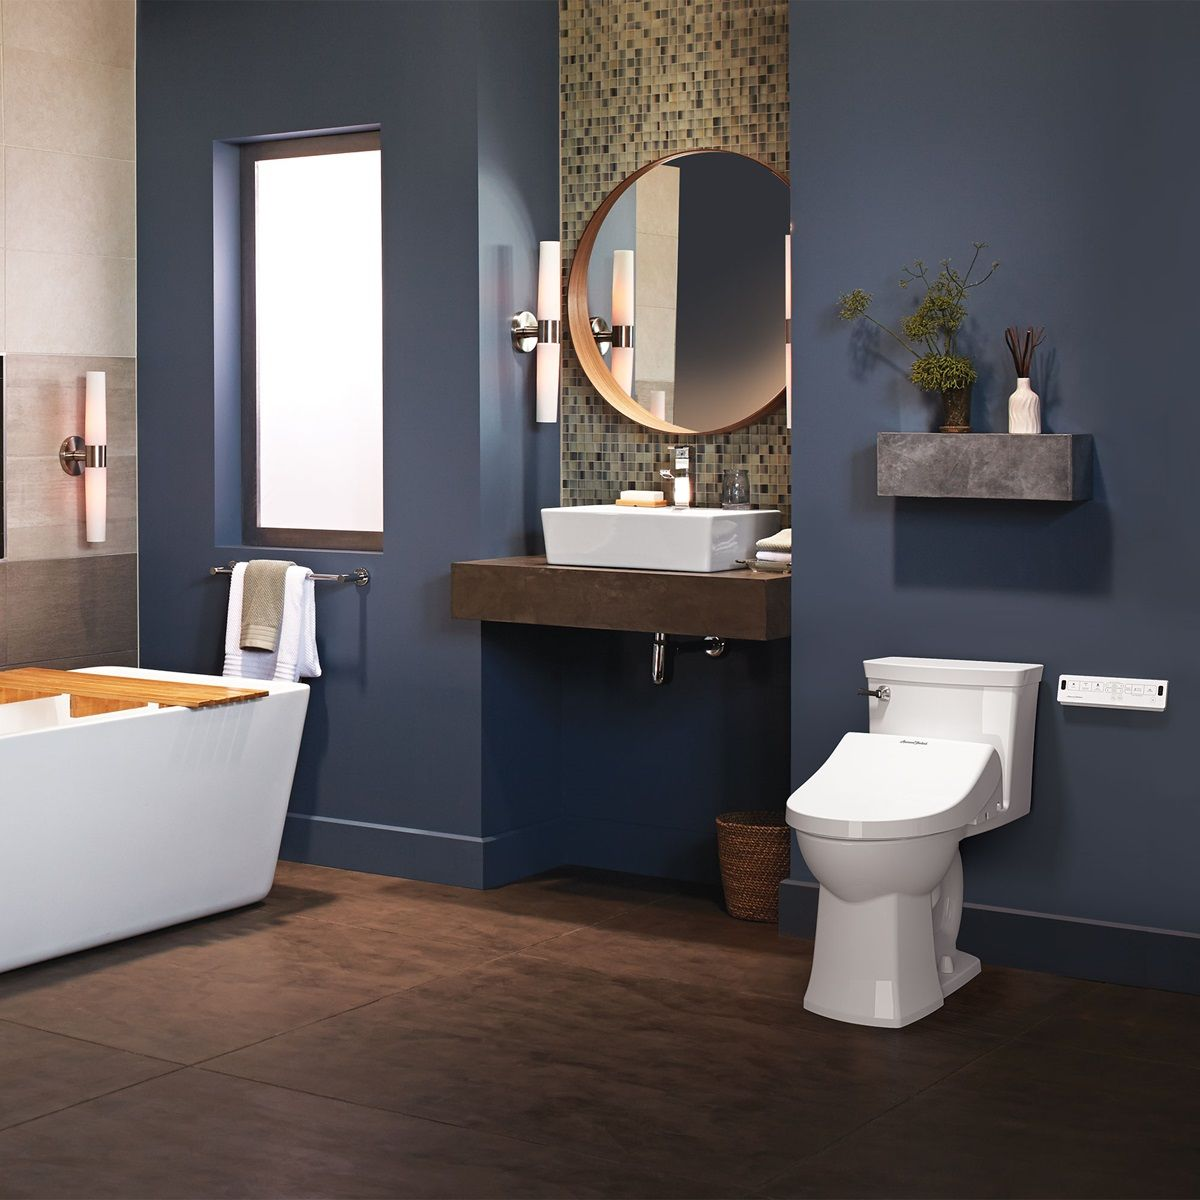 American Standard Has Created A Bidet Seat For All To Use And At A